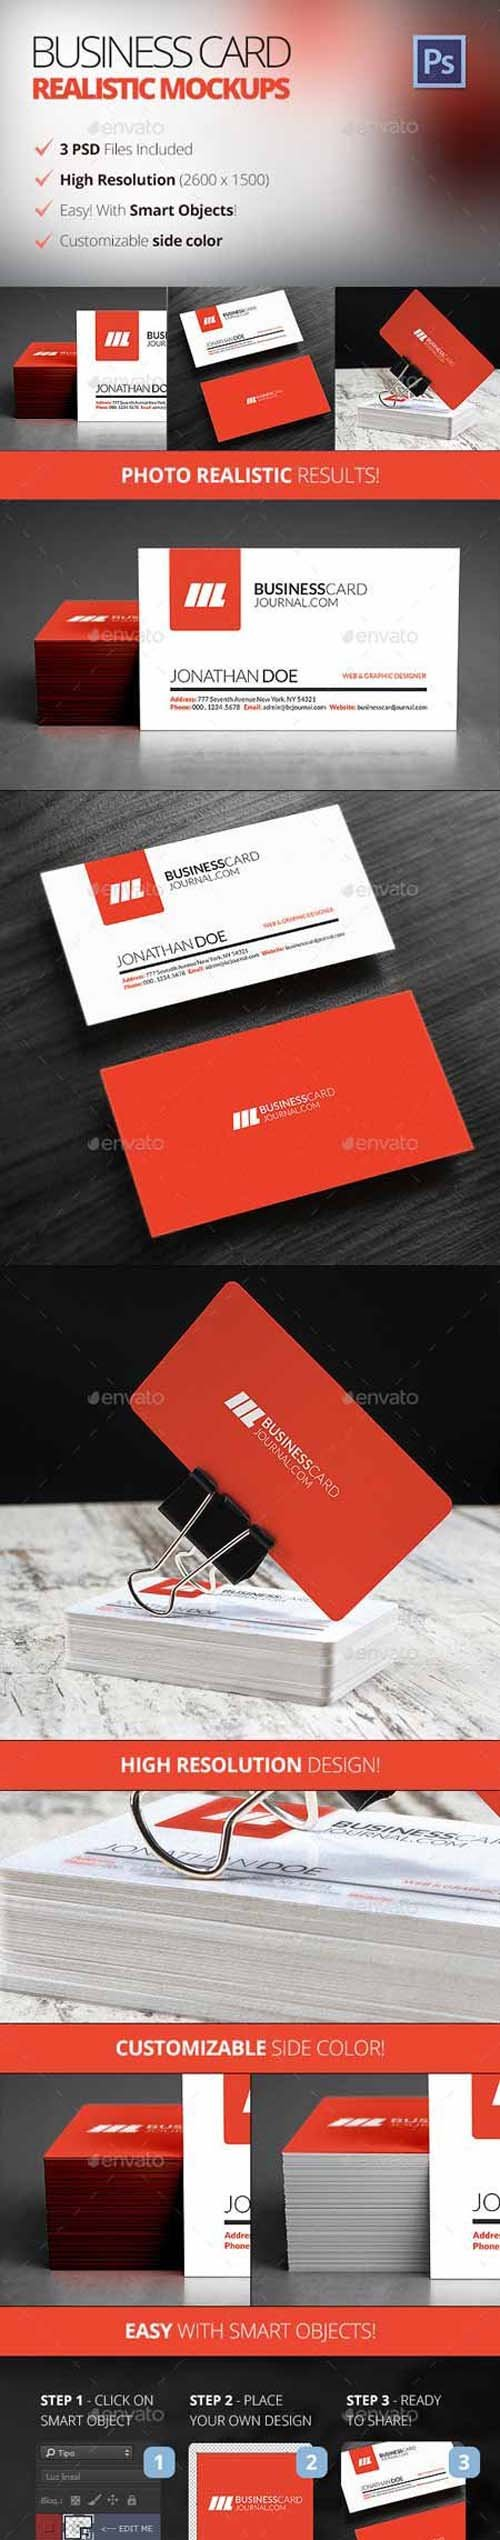 GR - Photo Realistic Business Card Mockups